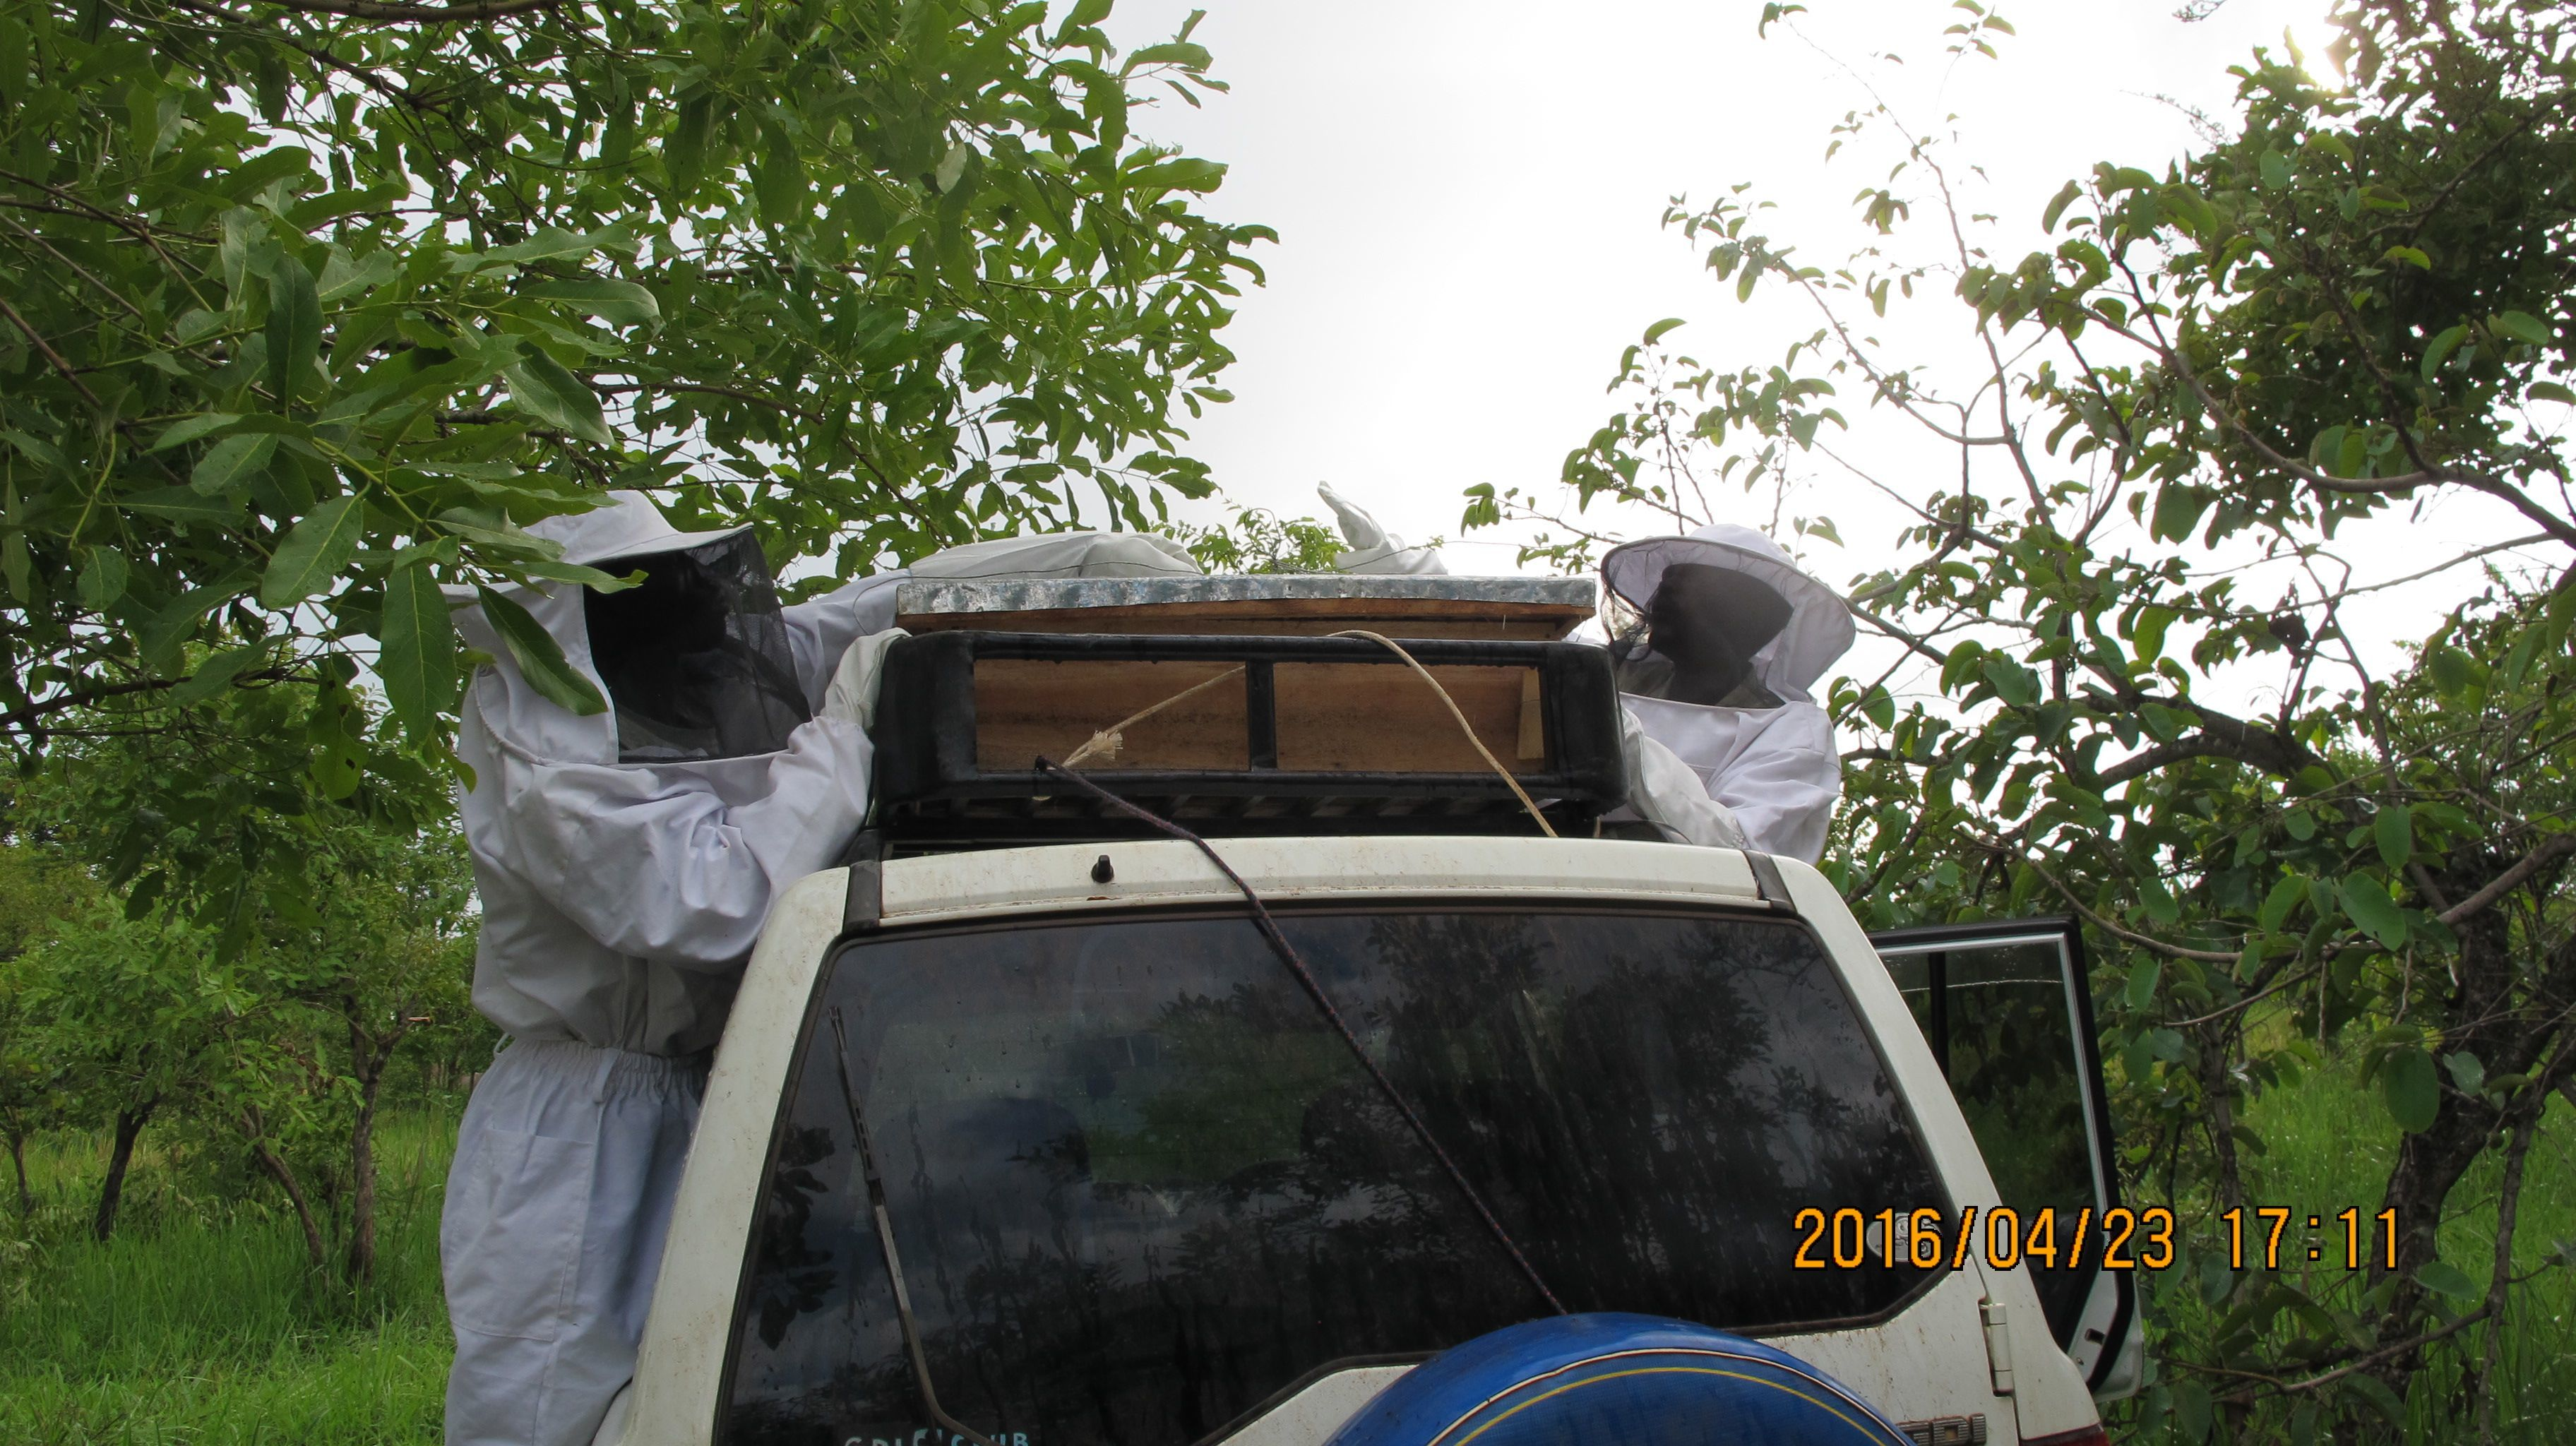 This was our live hive. Unfortunately, the bees absconded shortly after the hive was placed in the Apiary.